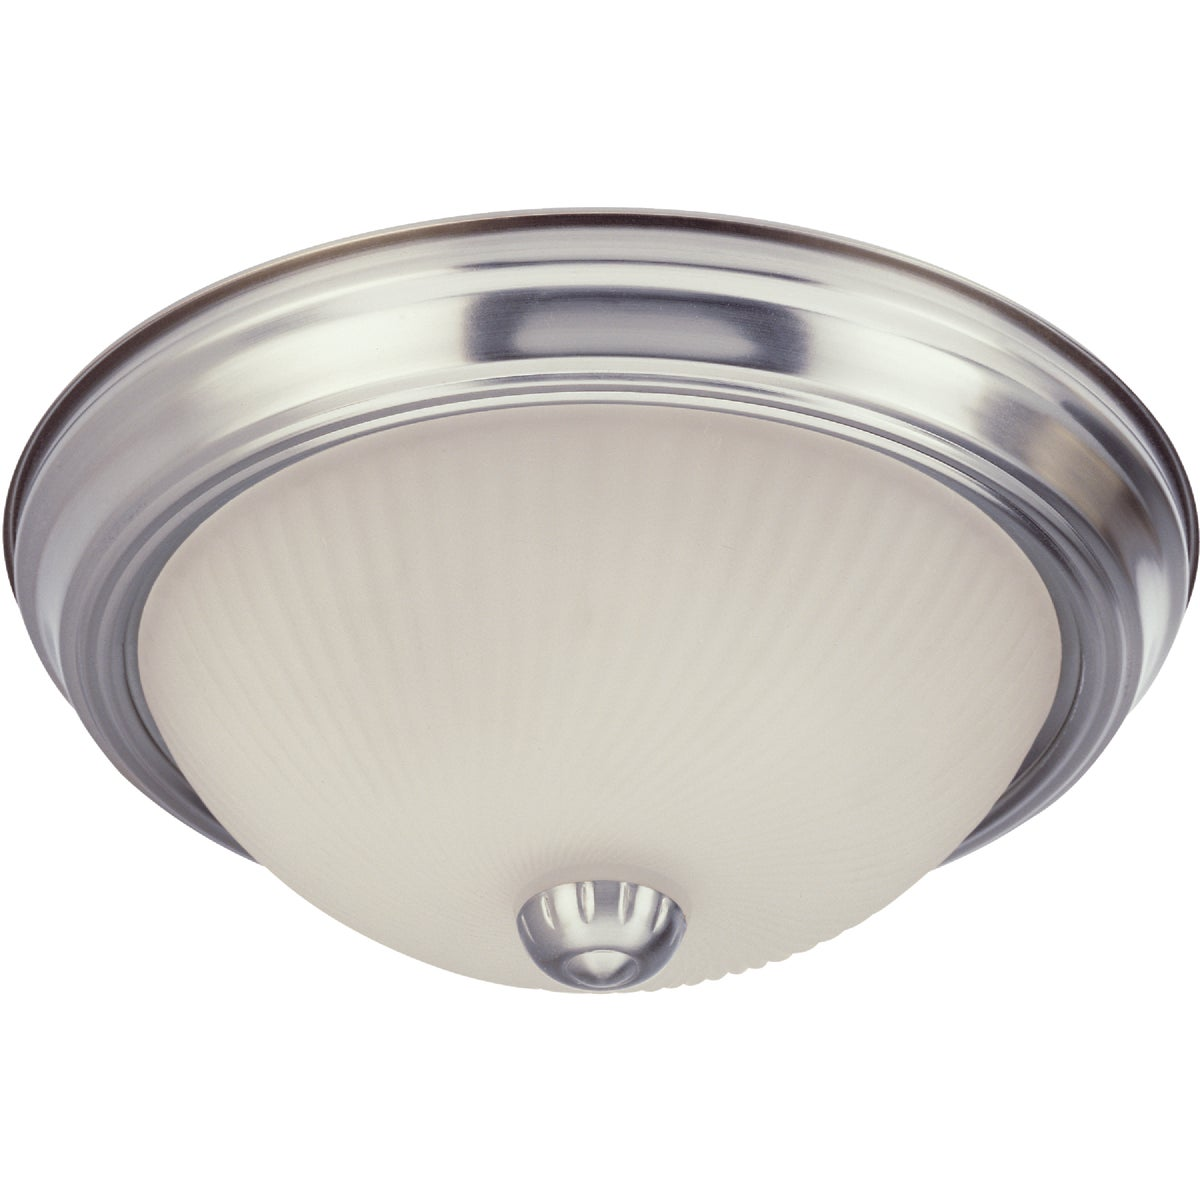 2BULB BN CEILING FIXTURE - IFM213BN by Canarm Gs